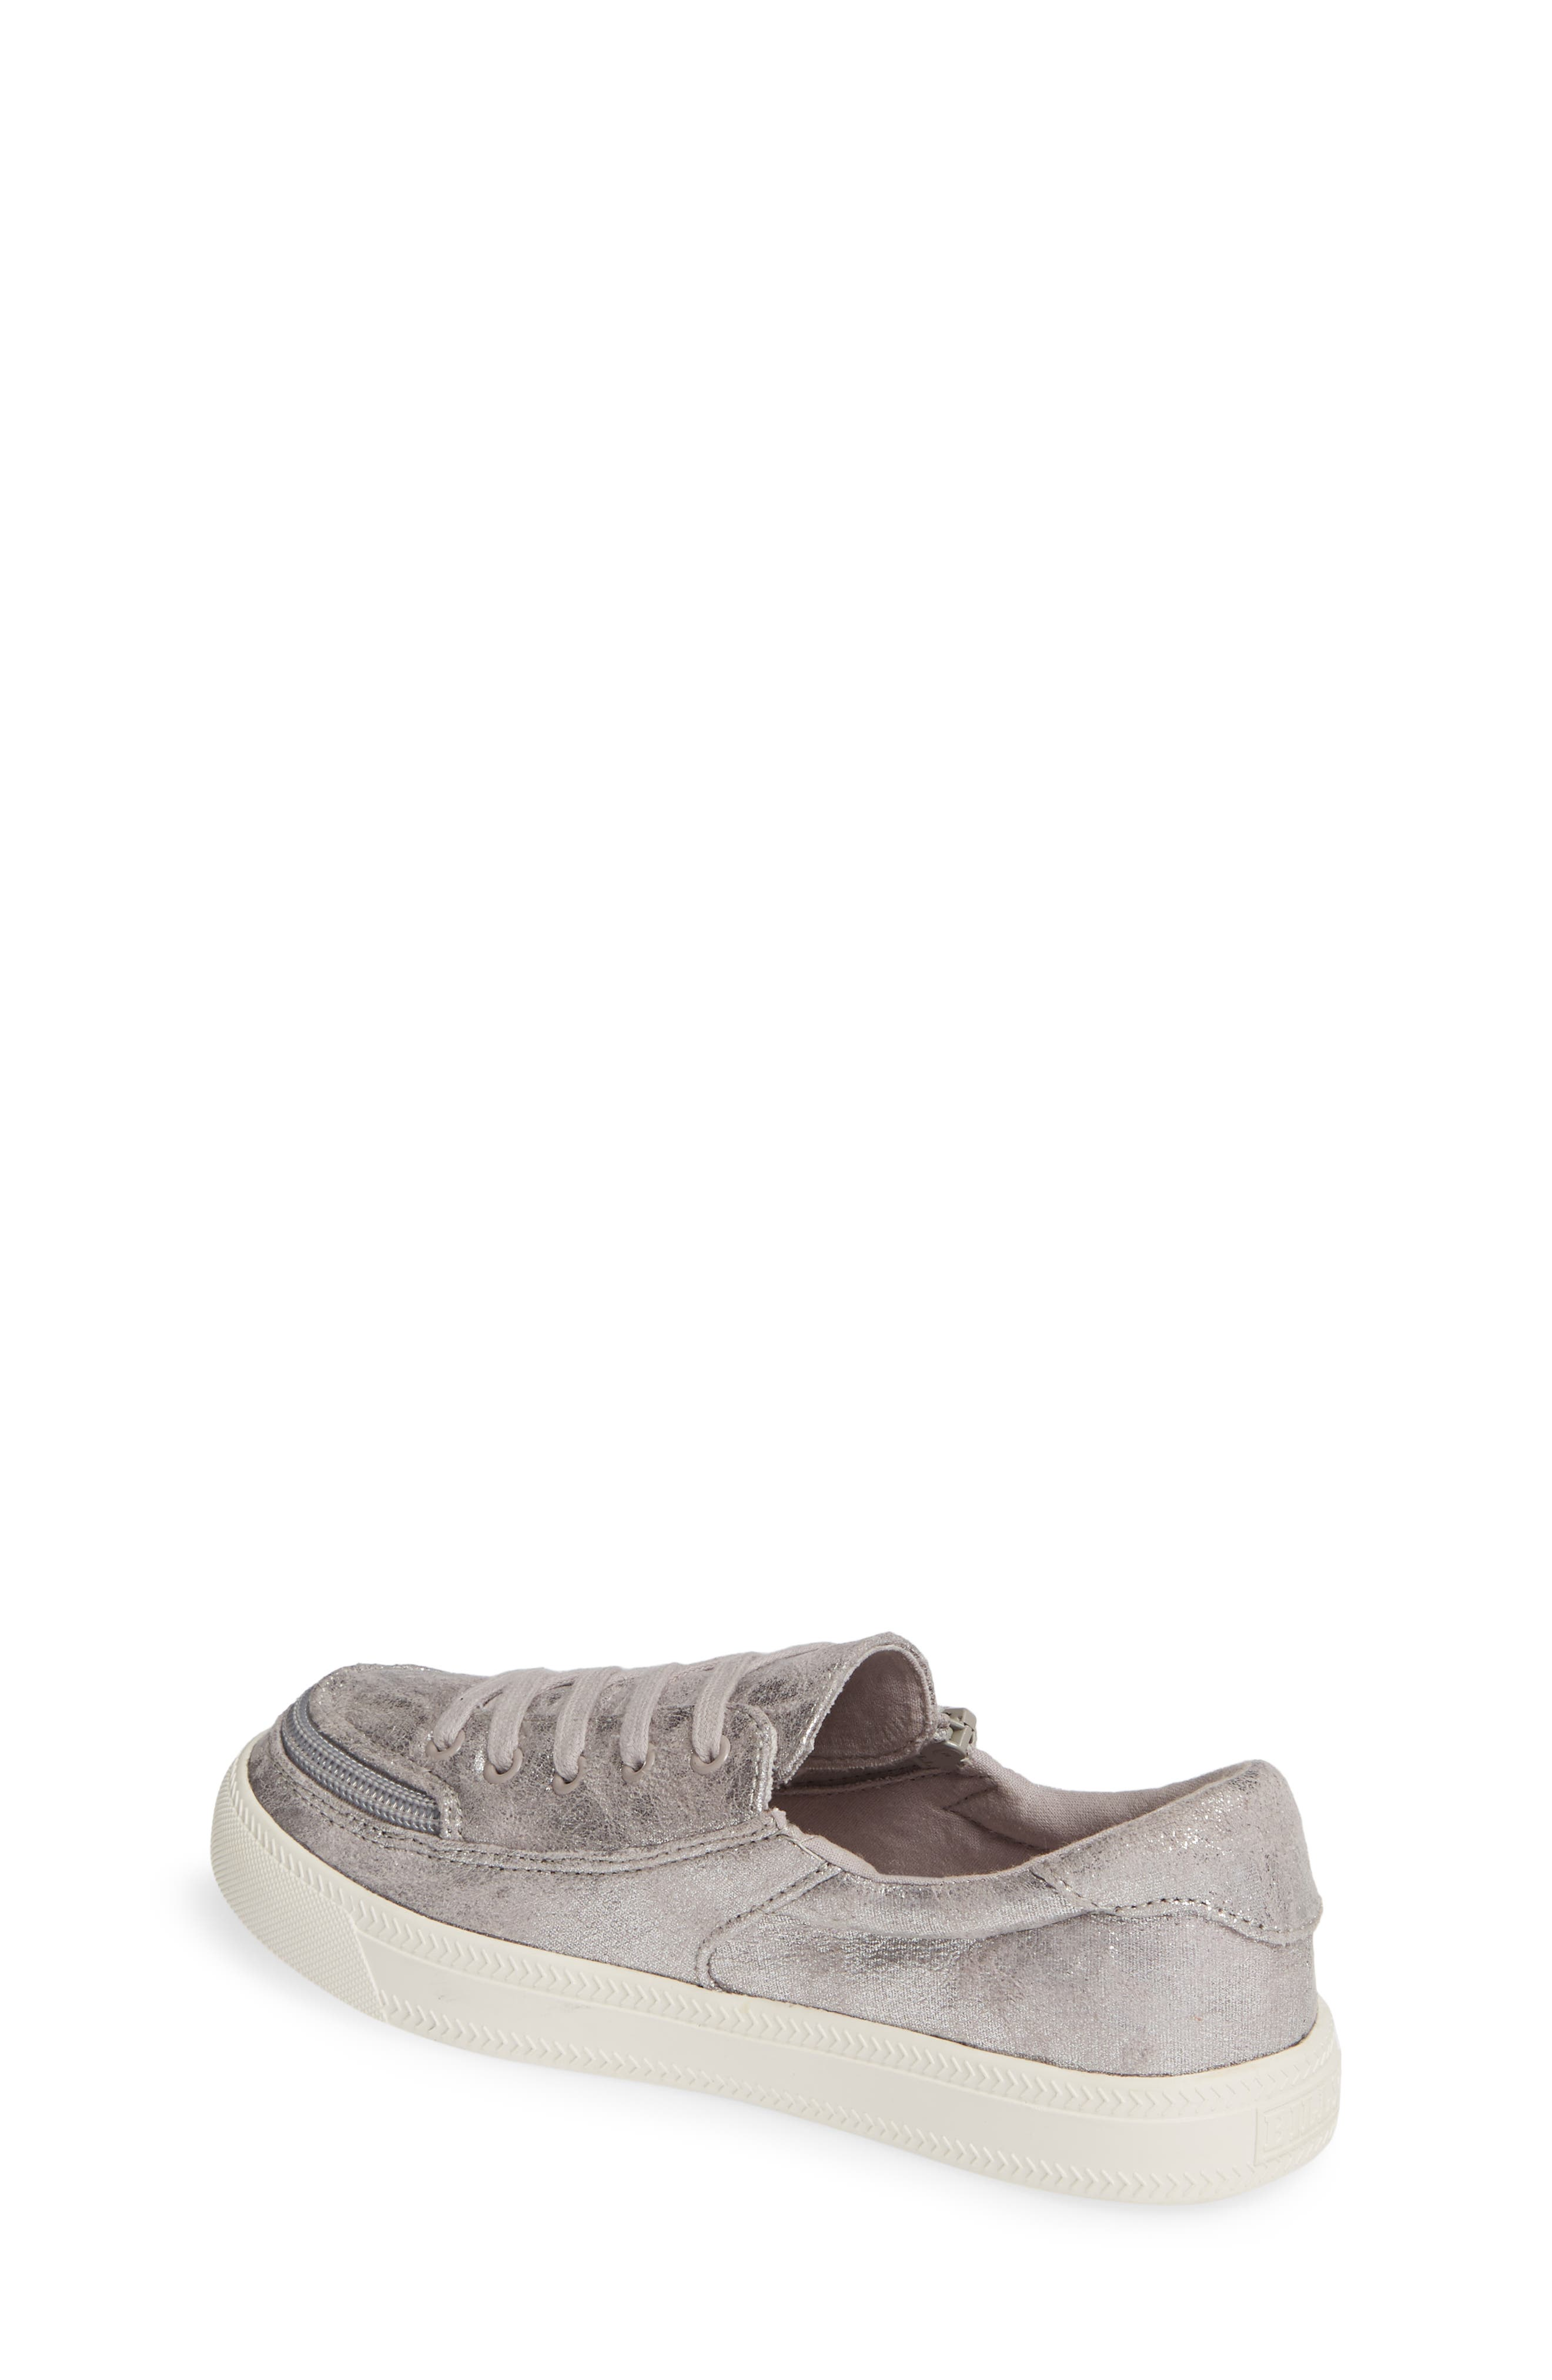 BILLY FOOTWEAR, Zip Around Low Top Sneaker, Alternate thumbnail 2, color, GREY METALLIC